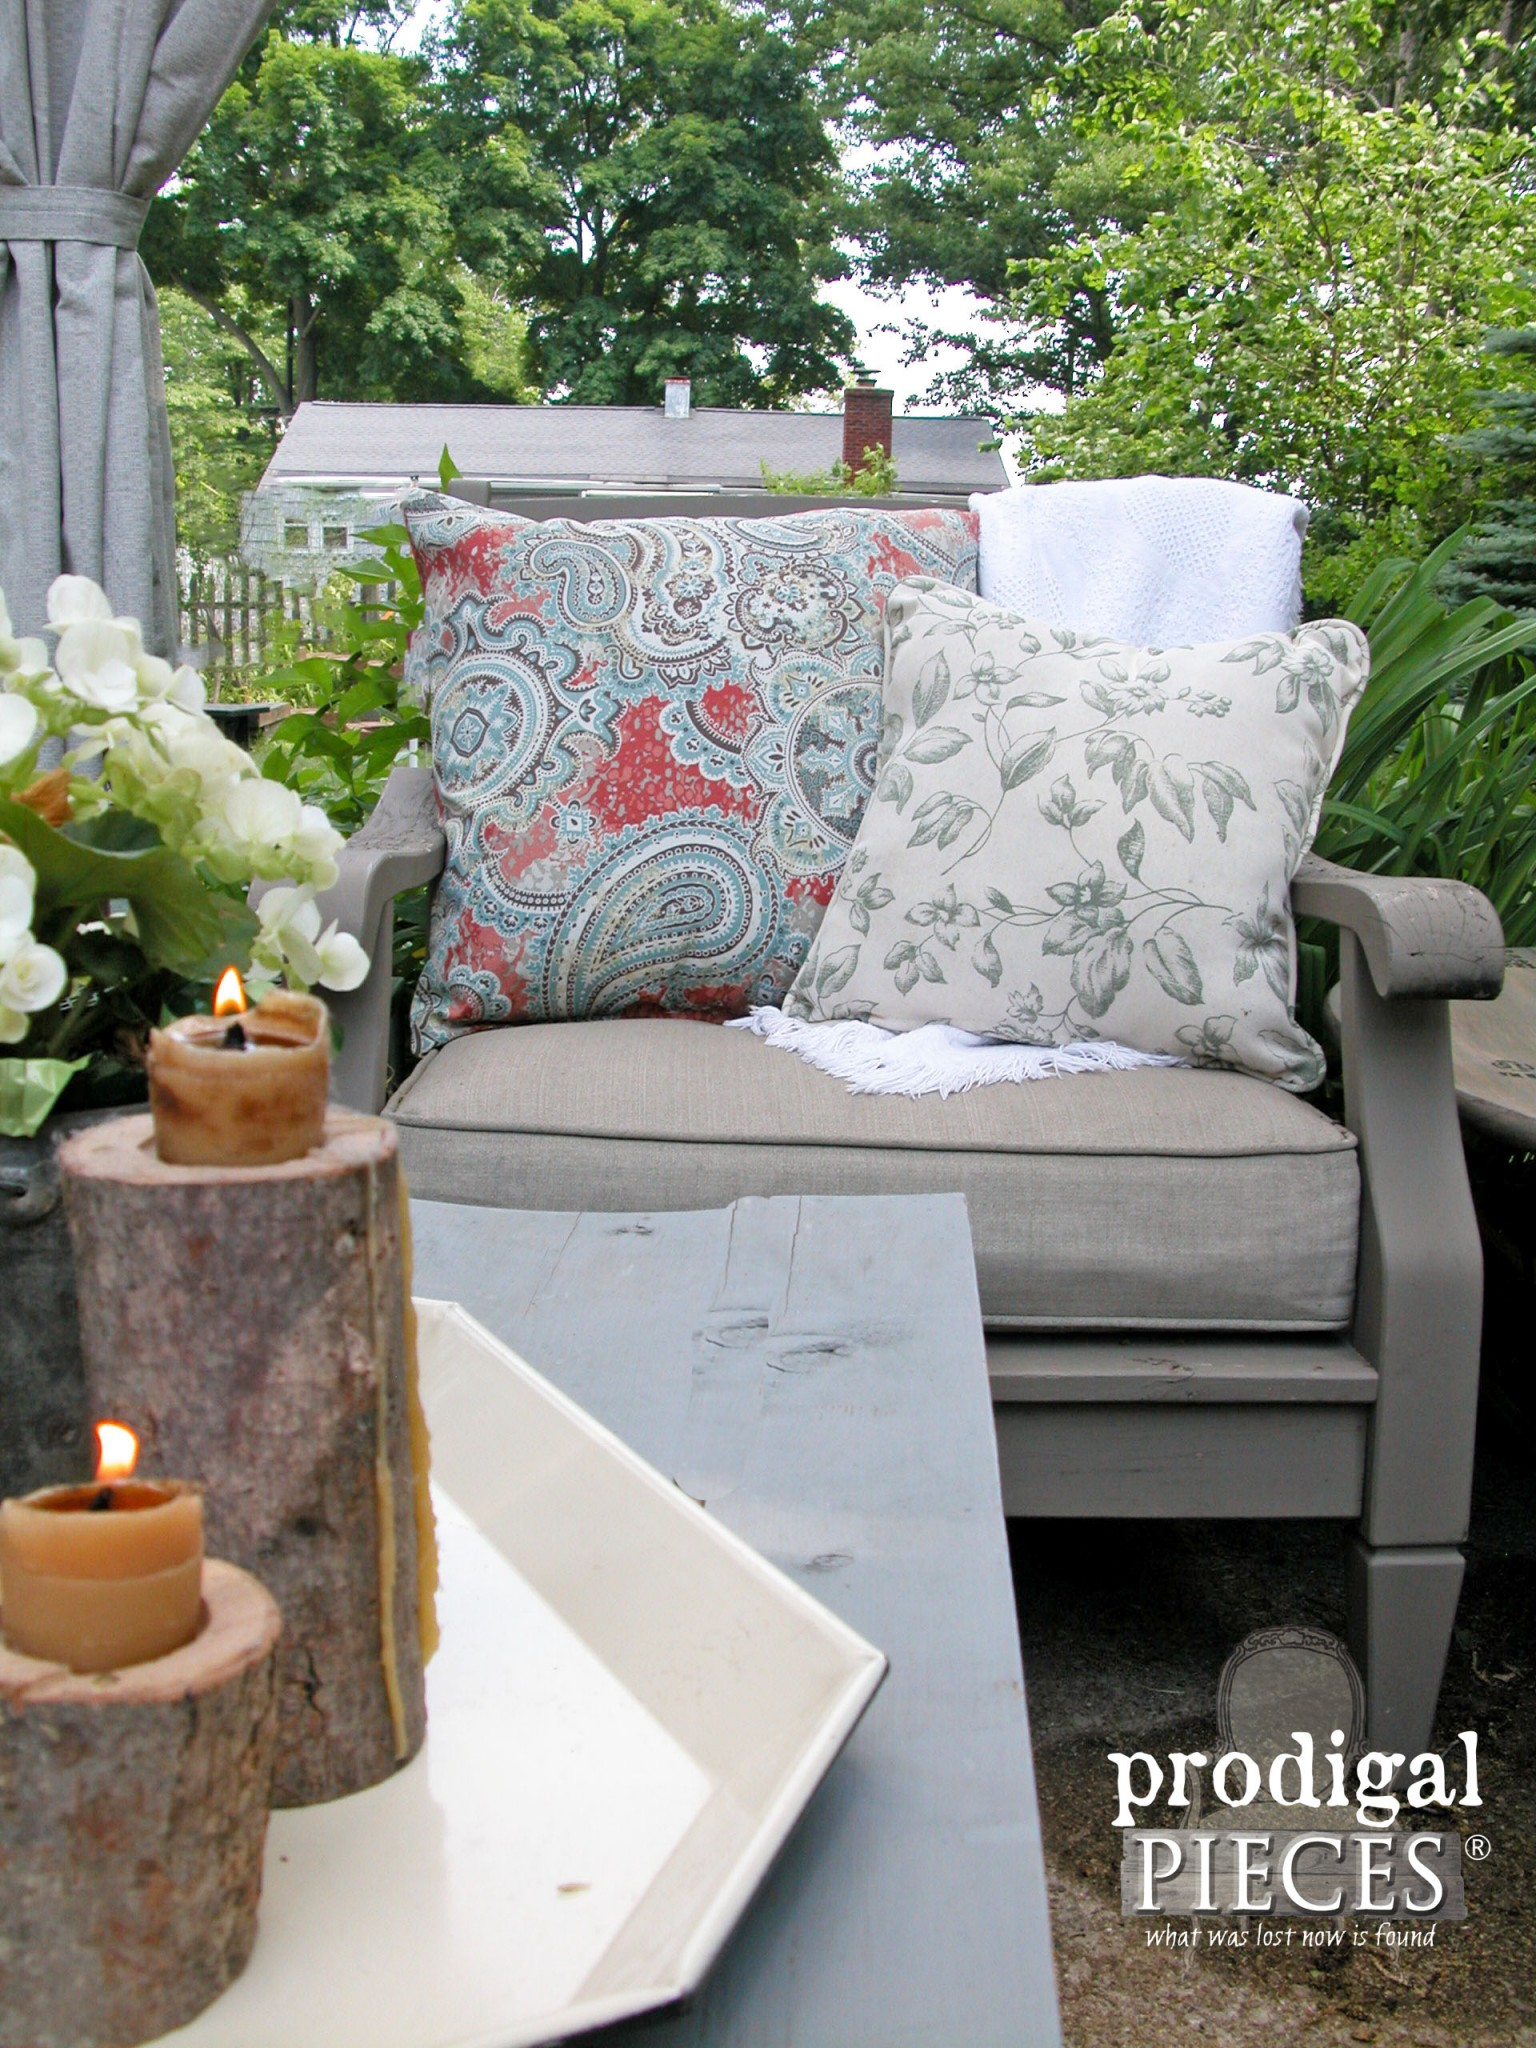 Create DIY Outdoor Pillows with this Easy to Follow Tutorial by Prodigal Pieces | www.prodigalpieces.com